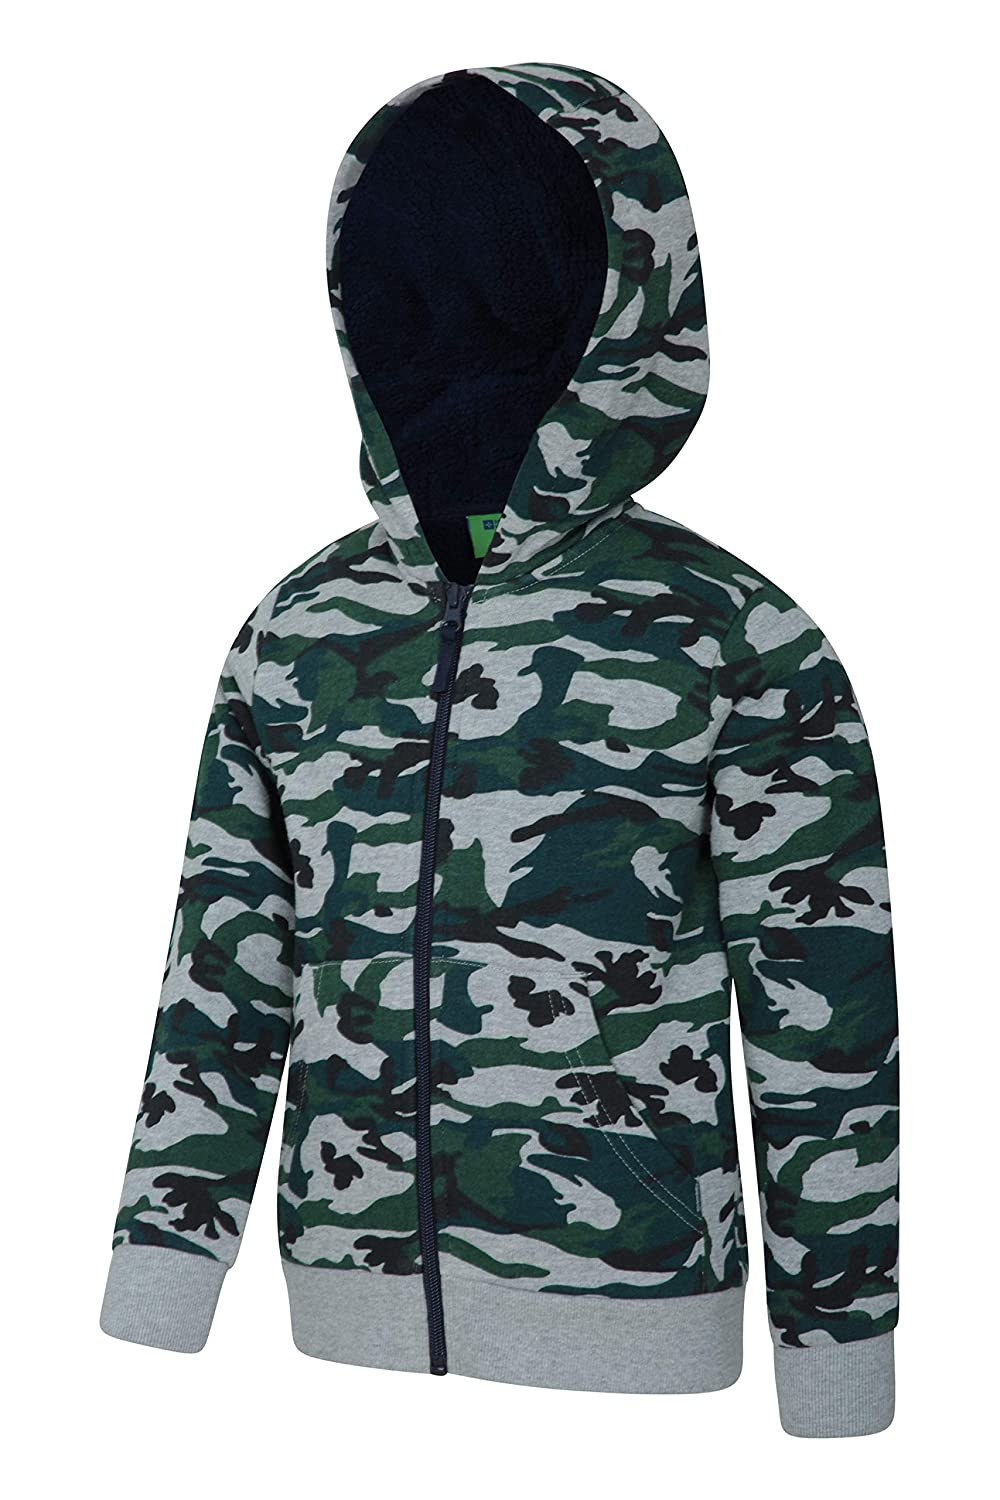 Lightweight Hoodie Mountain Warehouse Camo Fur Lined Hoody Warm /& Cosy Pullover Breathable Sweatshirt Travelling for Walking